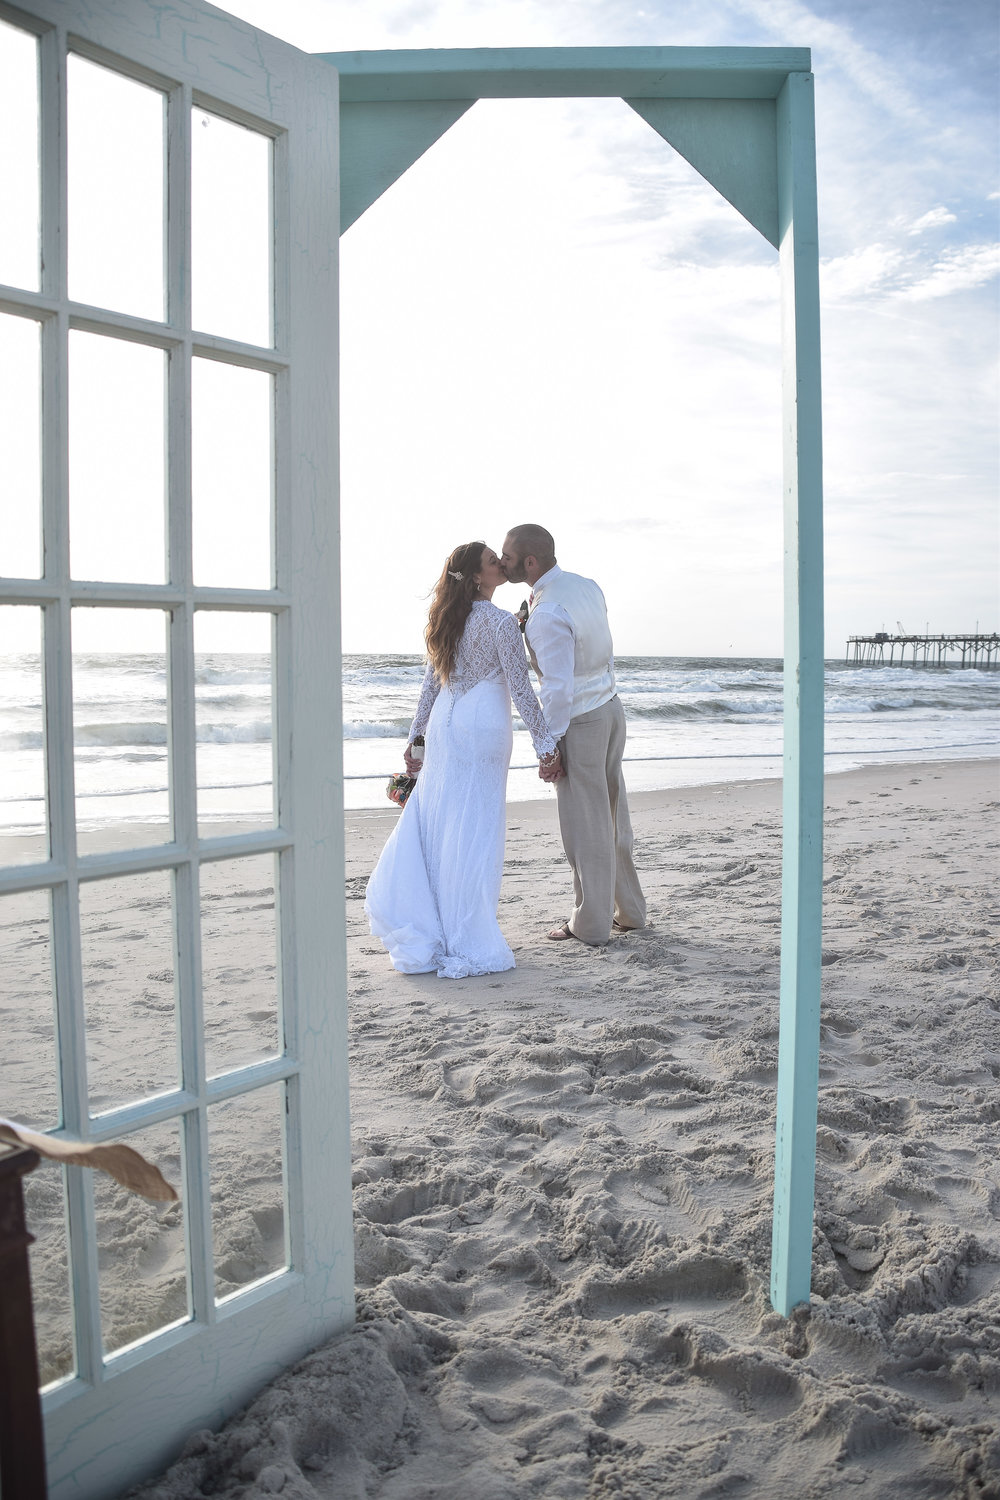 Door - Clever idea, they brought a door as a prop on the beach for their wedding. Carolina Beach, NC.